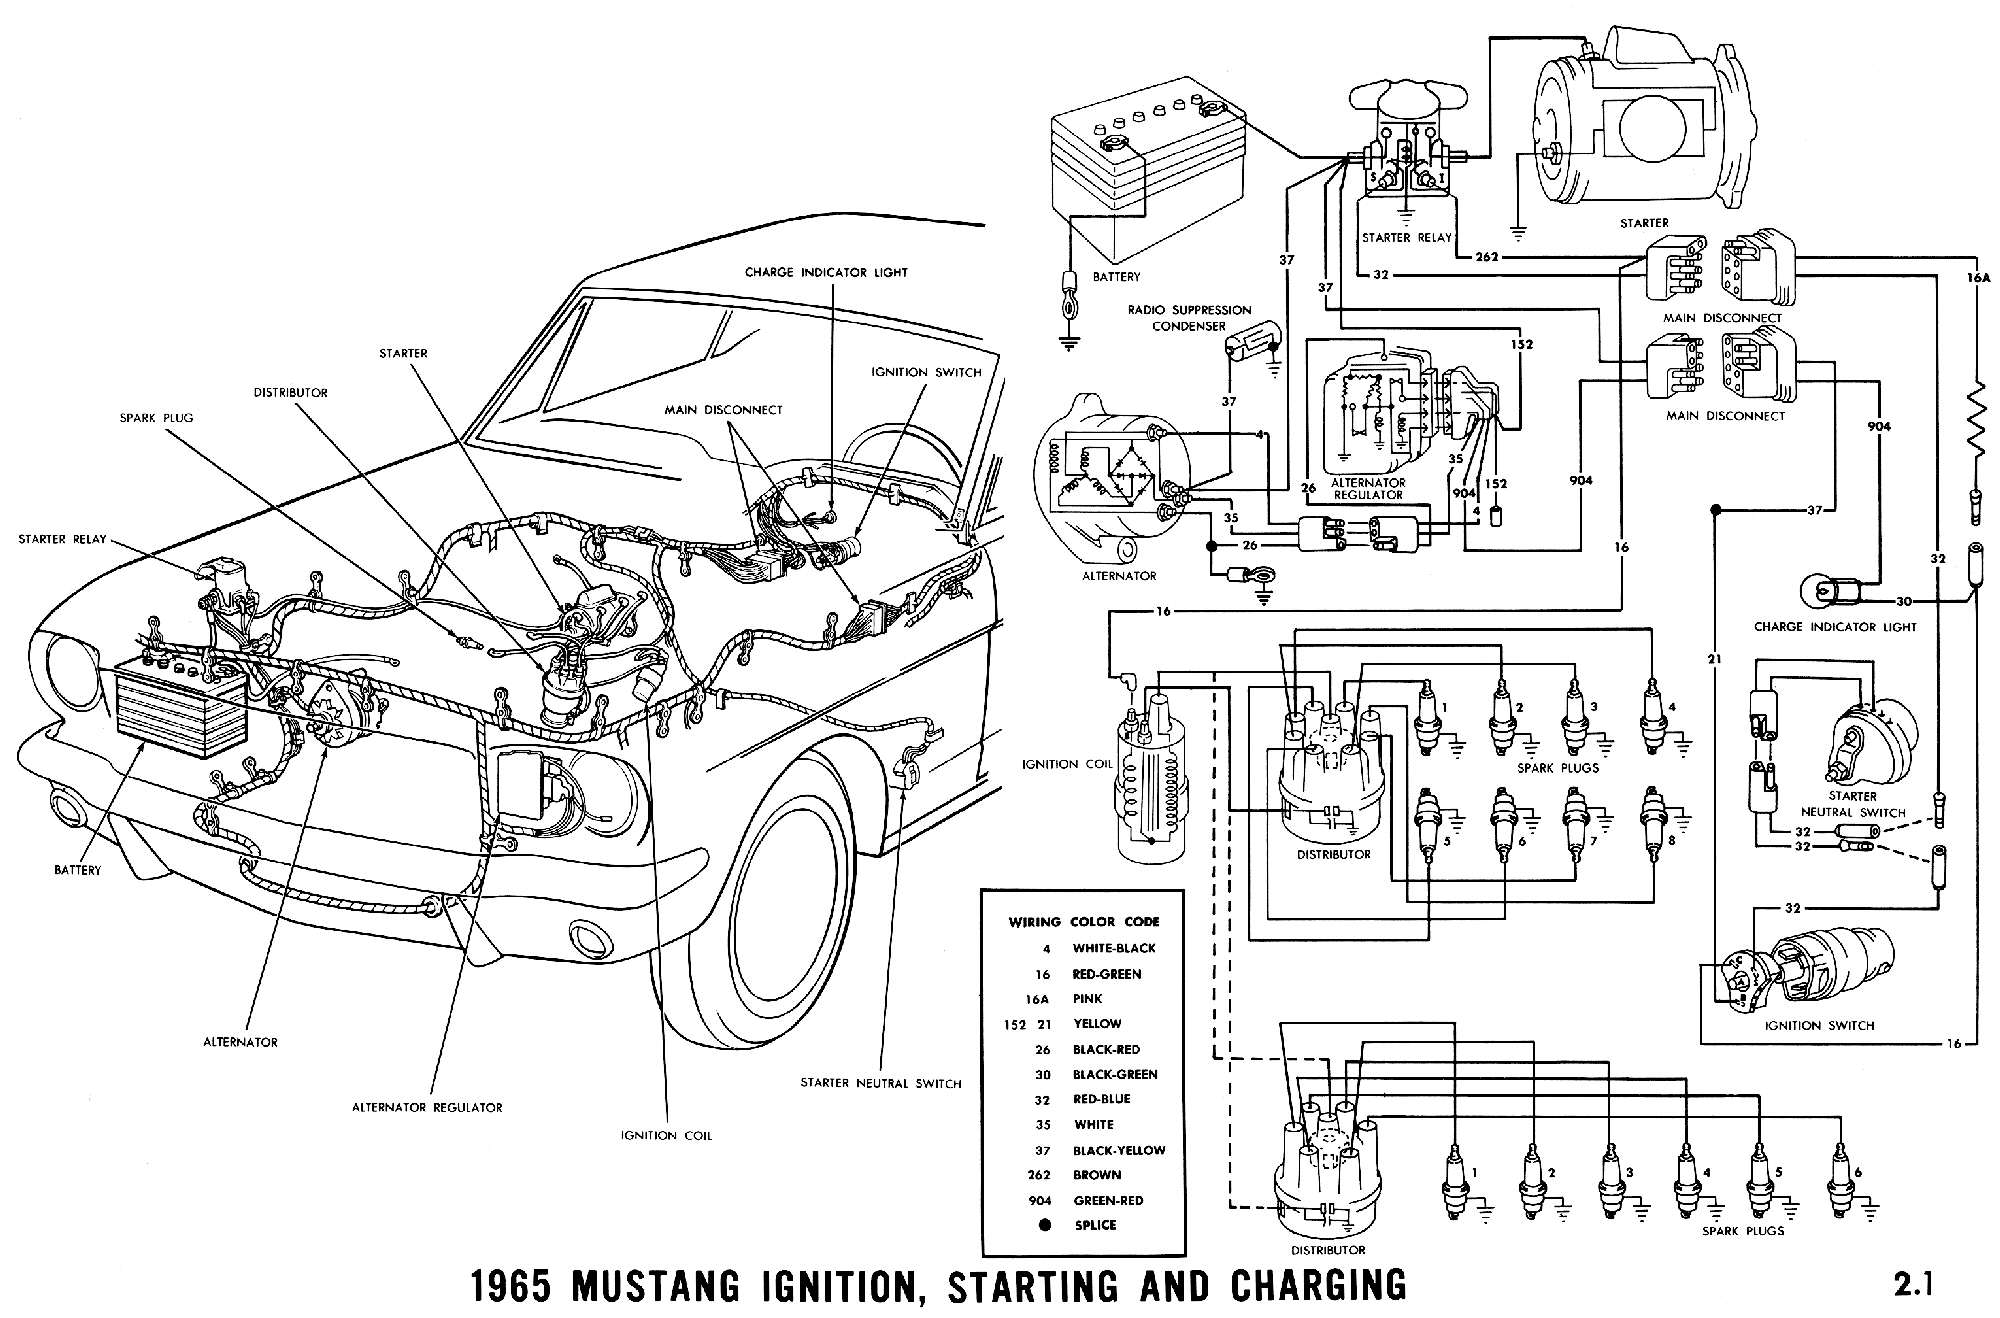 1965c 1965 mustang wiring diagrams average joe restoration 1967 mustang ignition wiring diagram at gsmx.co